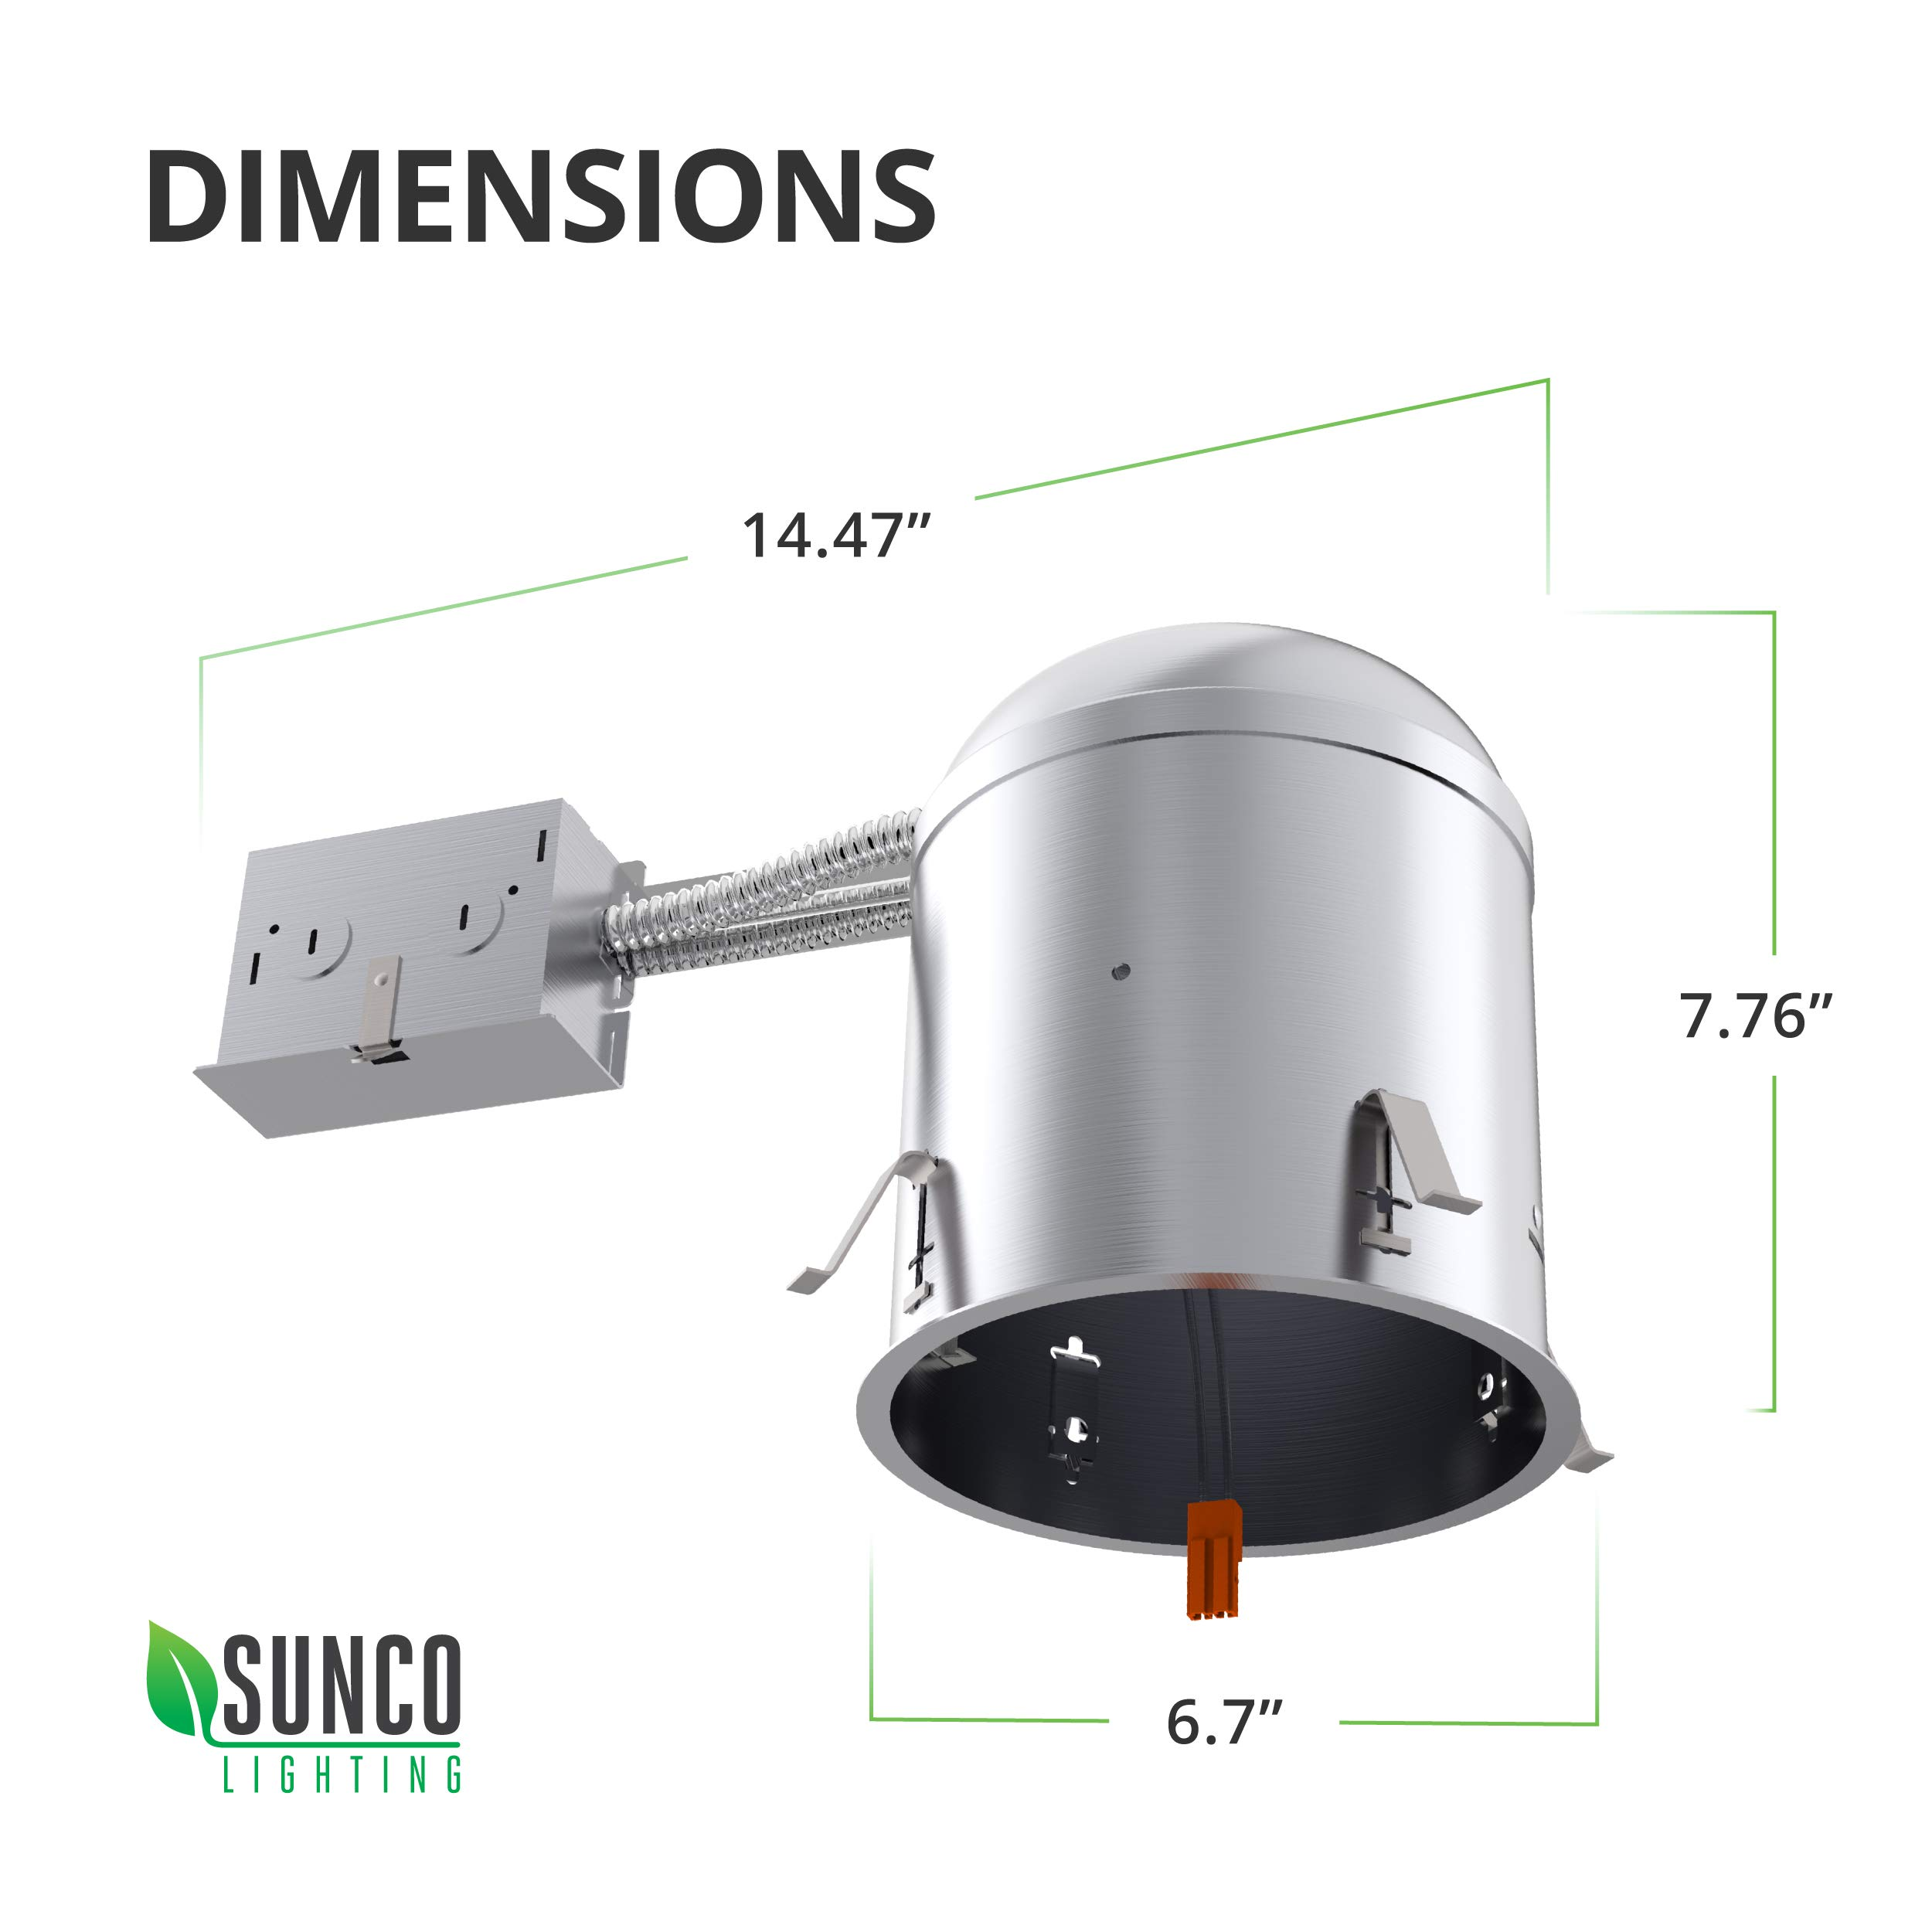 Sunco Lighting 6 Pack 6 Inch Remodel Housing, Air Tight IC Rated Aluminum Can, 120-277V, TP24 Connector Included for Easy Install - UL & Title 24 Compliant by Sunco Lighting (Image #7)